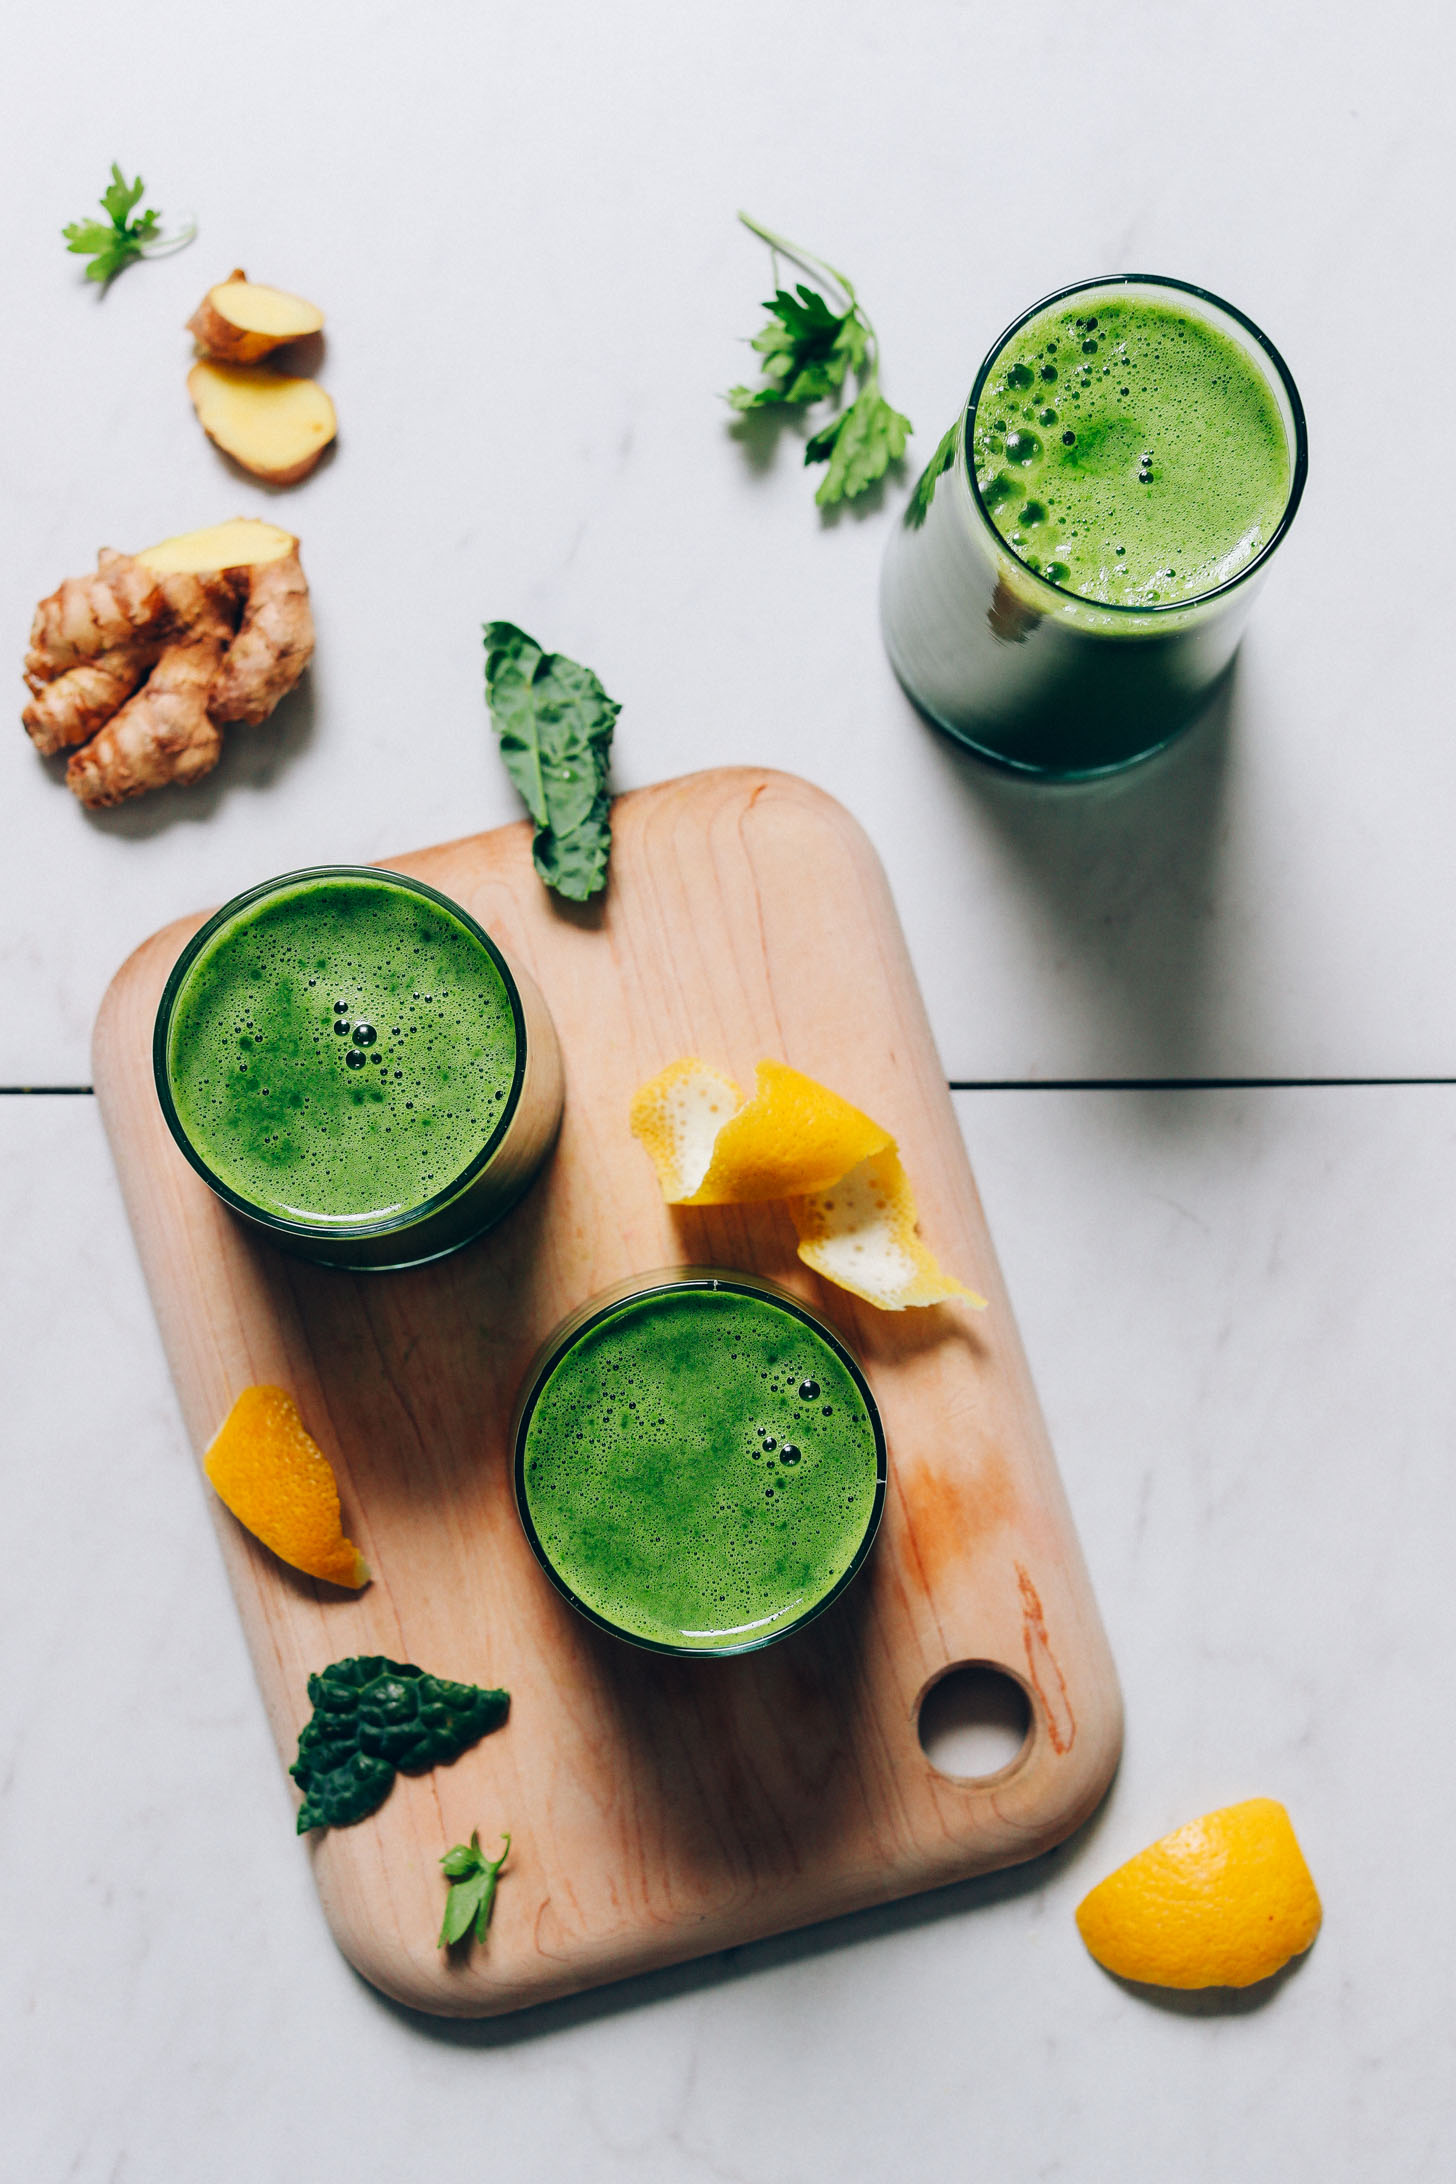 Glasses of homemade Green Juice on a cutting board beside ingredients used to make it